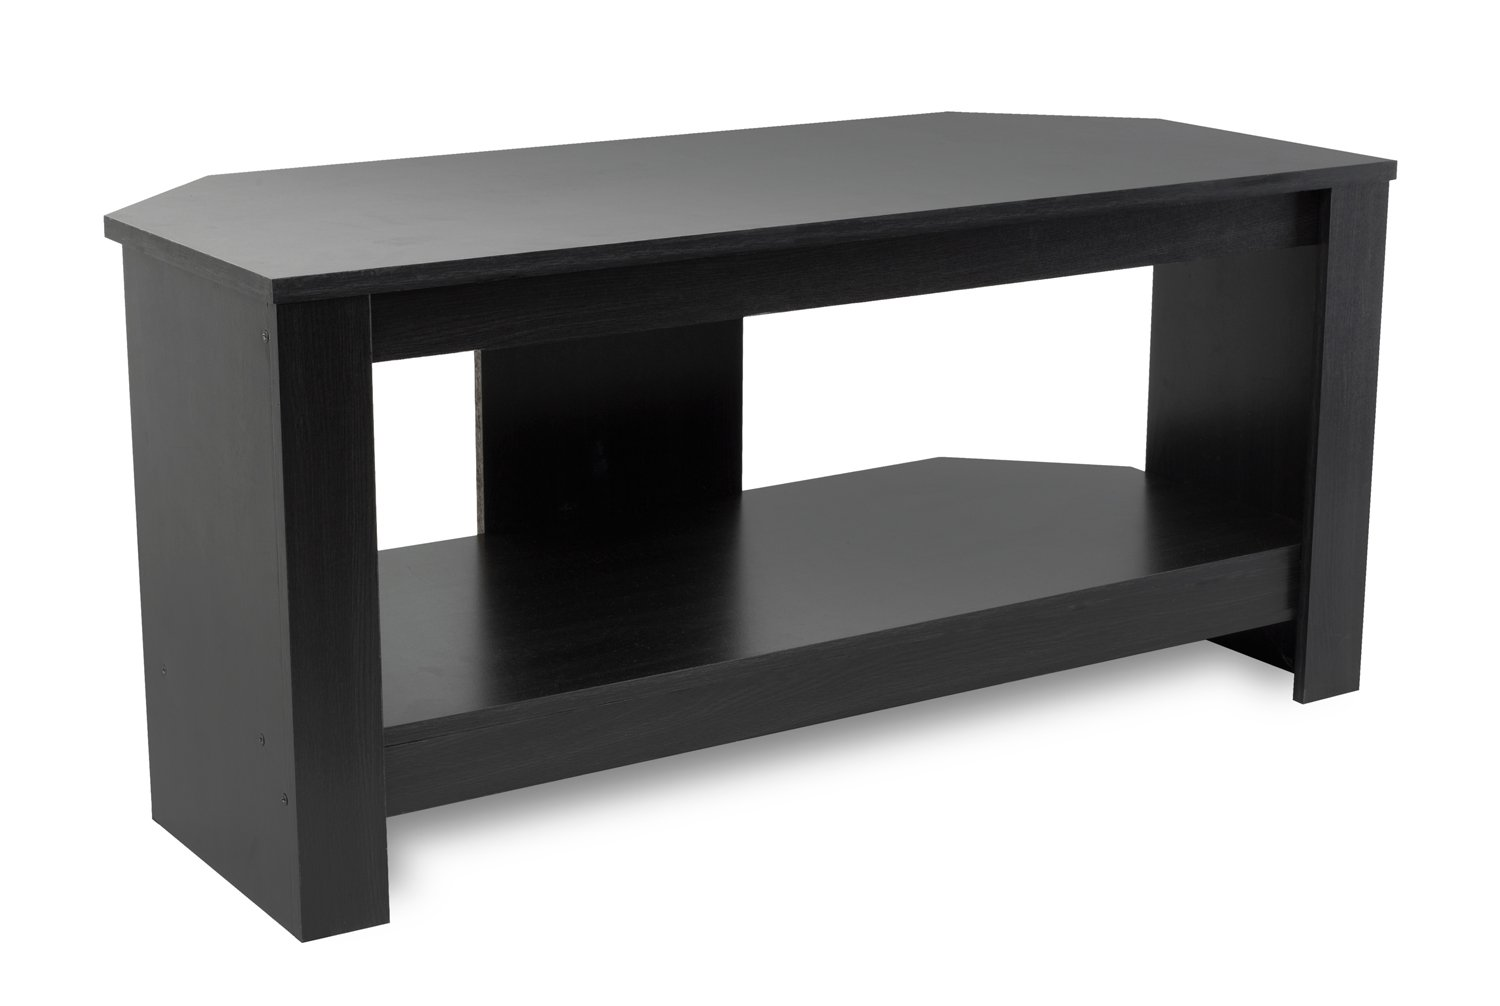 Mount-It! Wood TV Stand and Storage Console for 32, 35, 37 Inch Flat Screen TVs, 35 Lbs Capacity, Black by Mount-It!